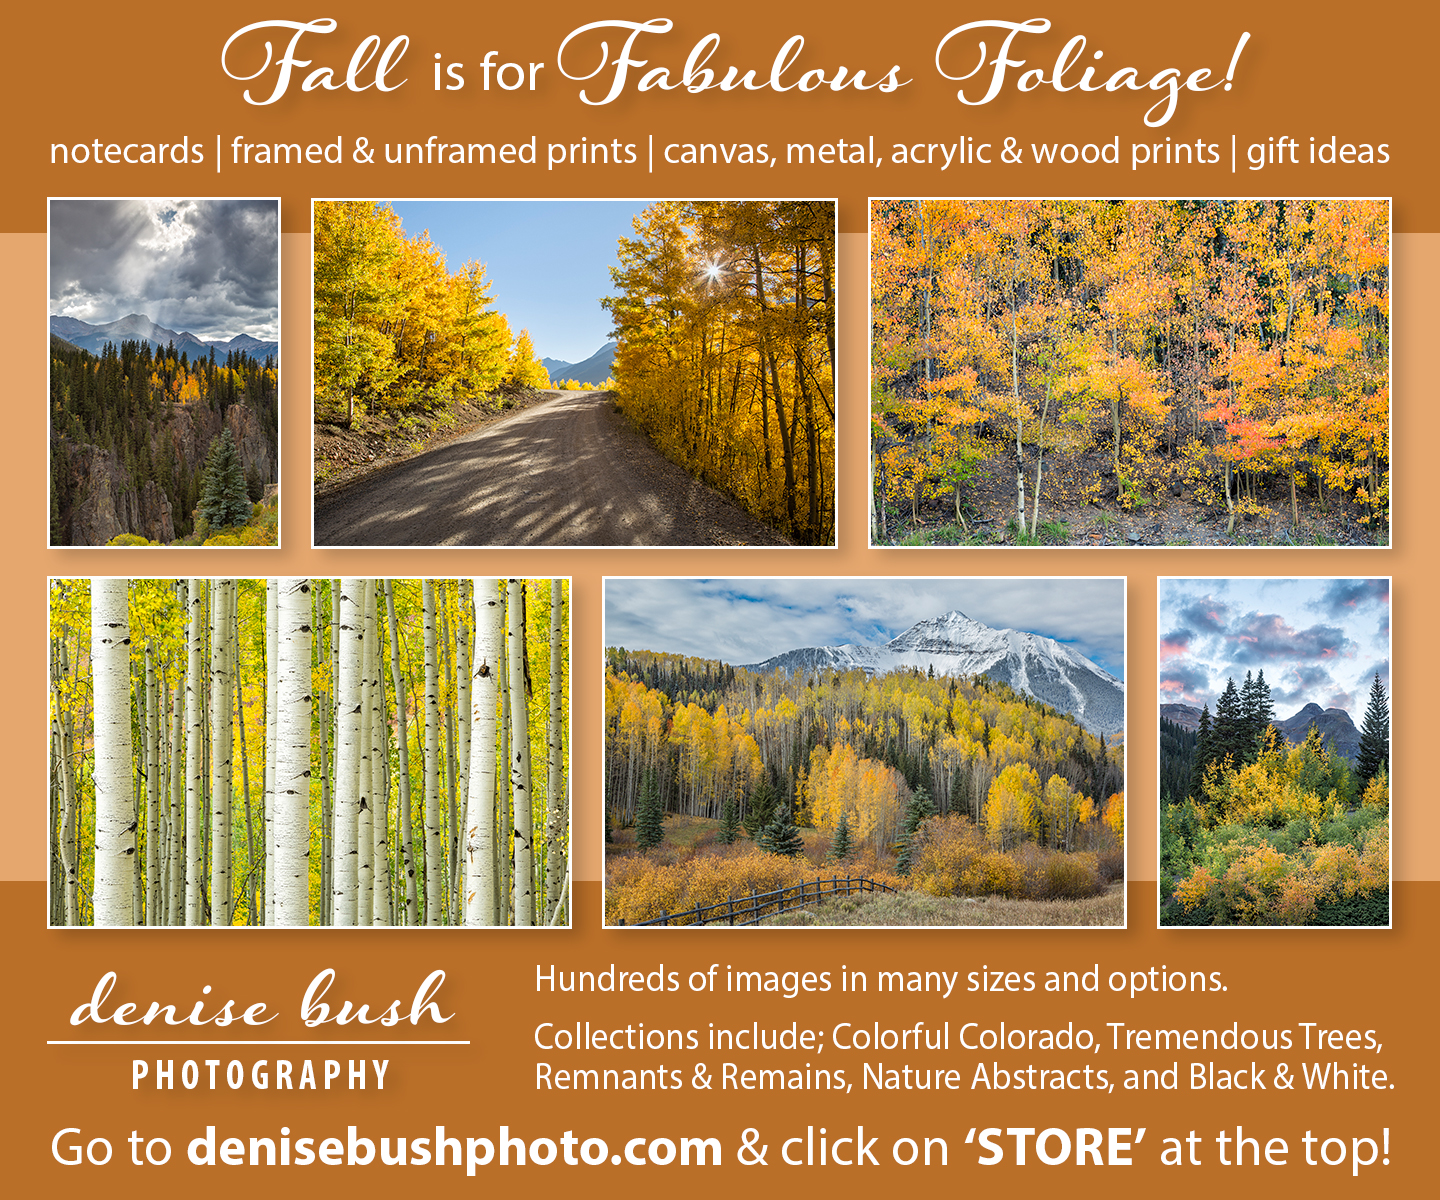 Fine Art Photographic prints, framed, unframed, metal, acrylic, canvas and more ... any size!